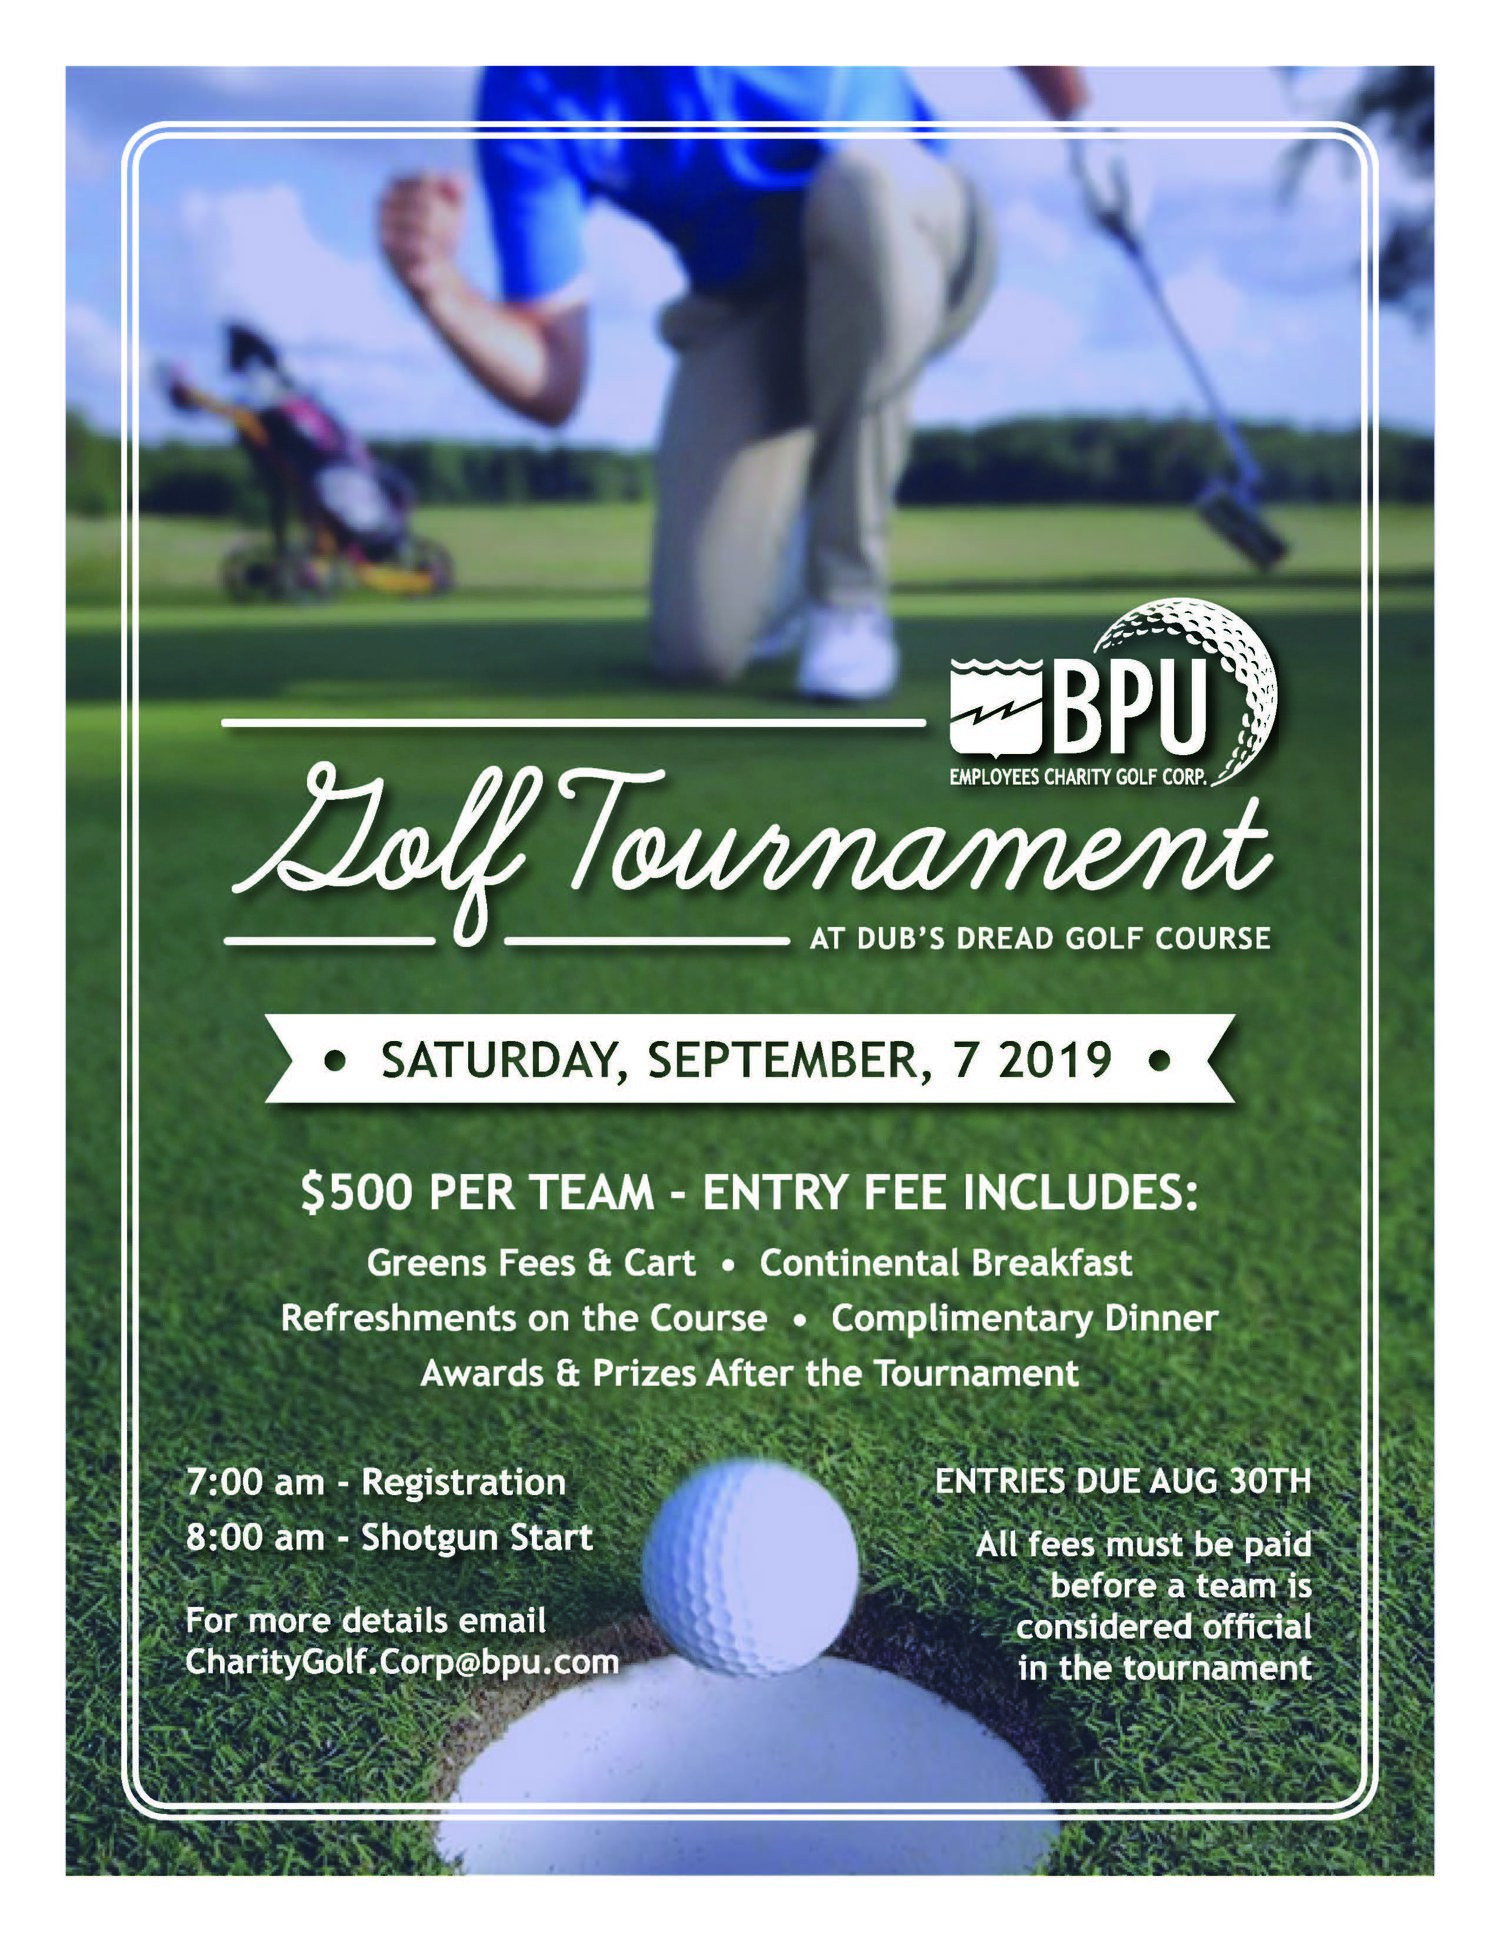 36+ Charity golf tournaments 2019 ideas in 2021